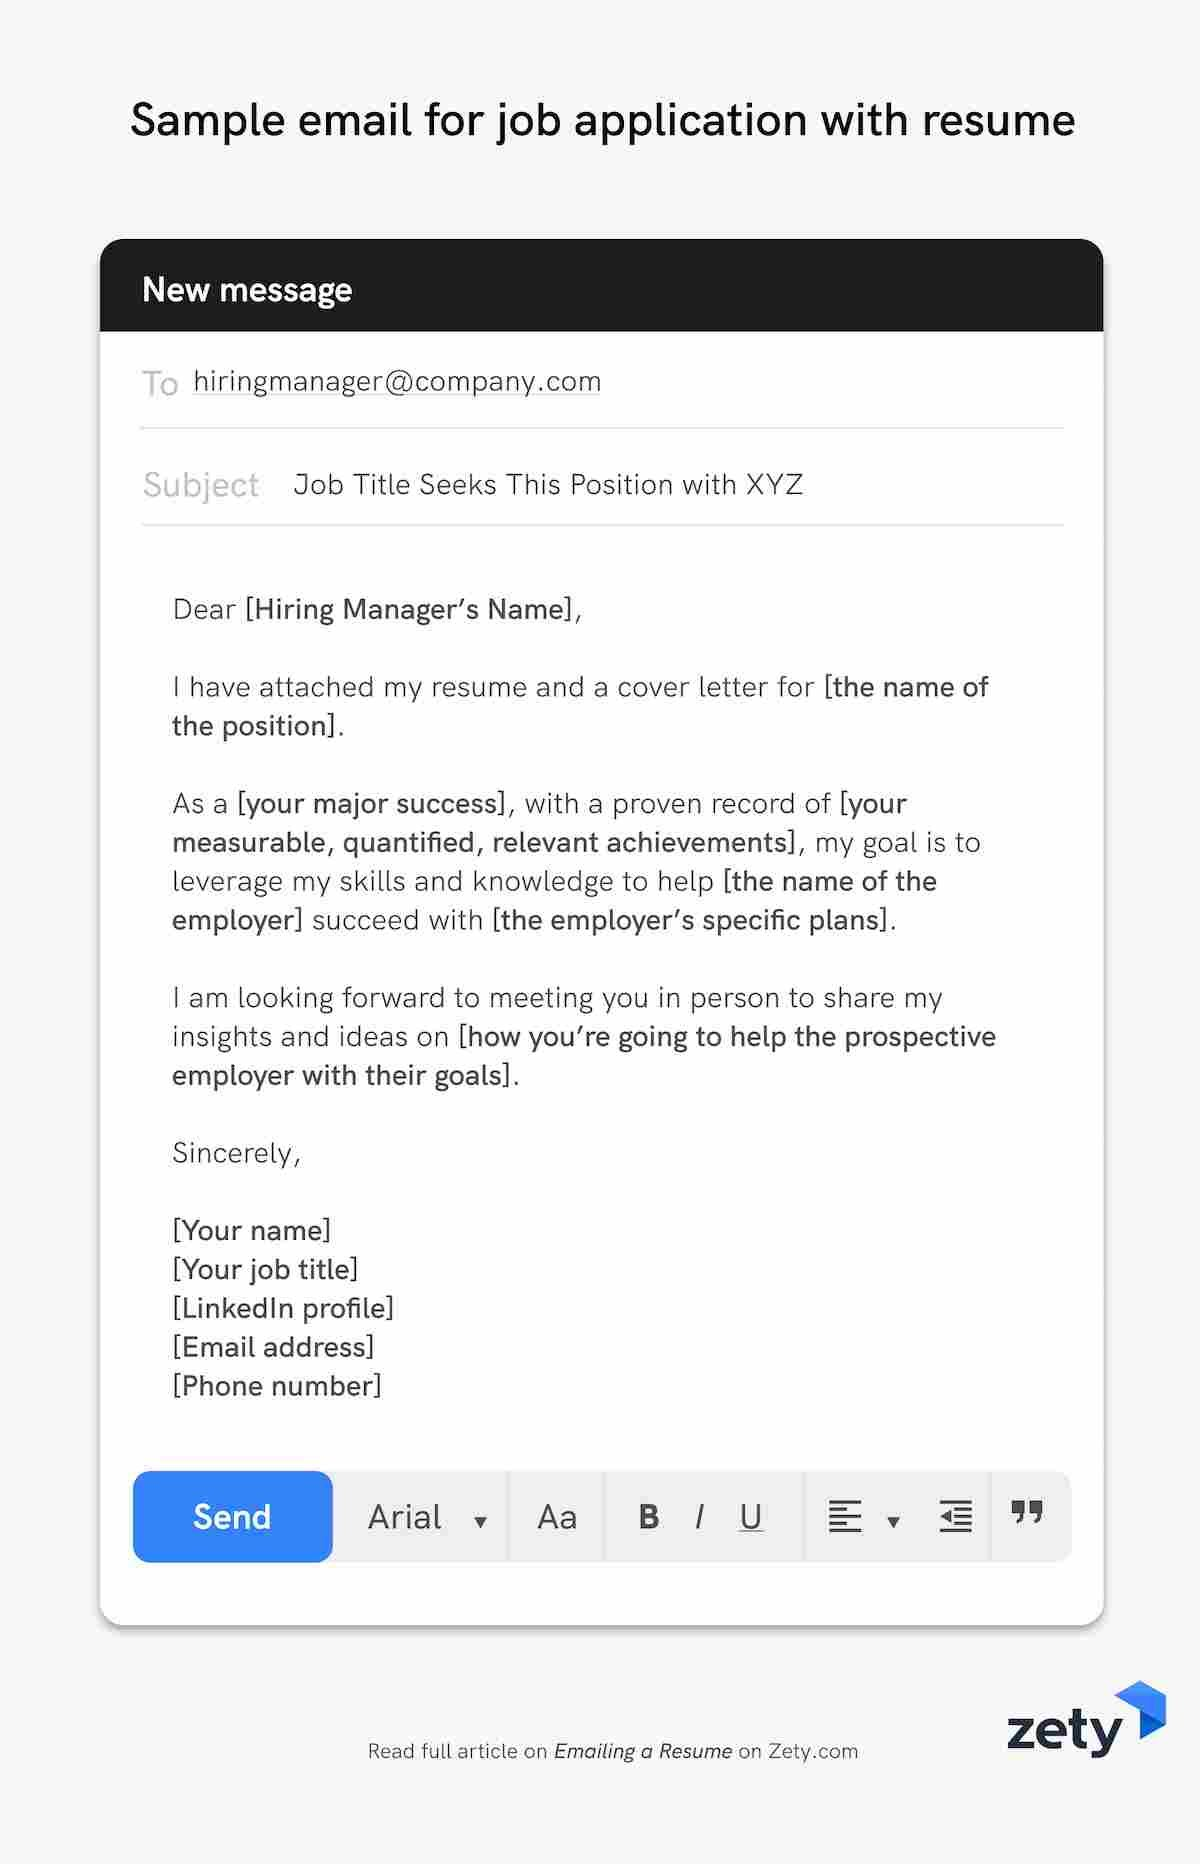 emailing resume job application email samples forwarding through sample for with etl Resume Forwarding Resume Through Email